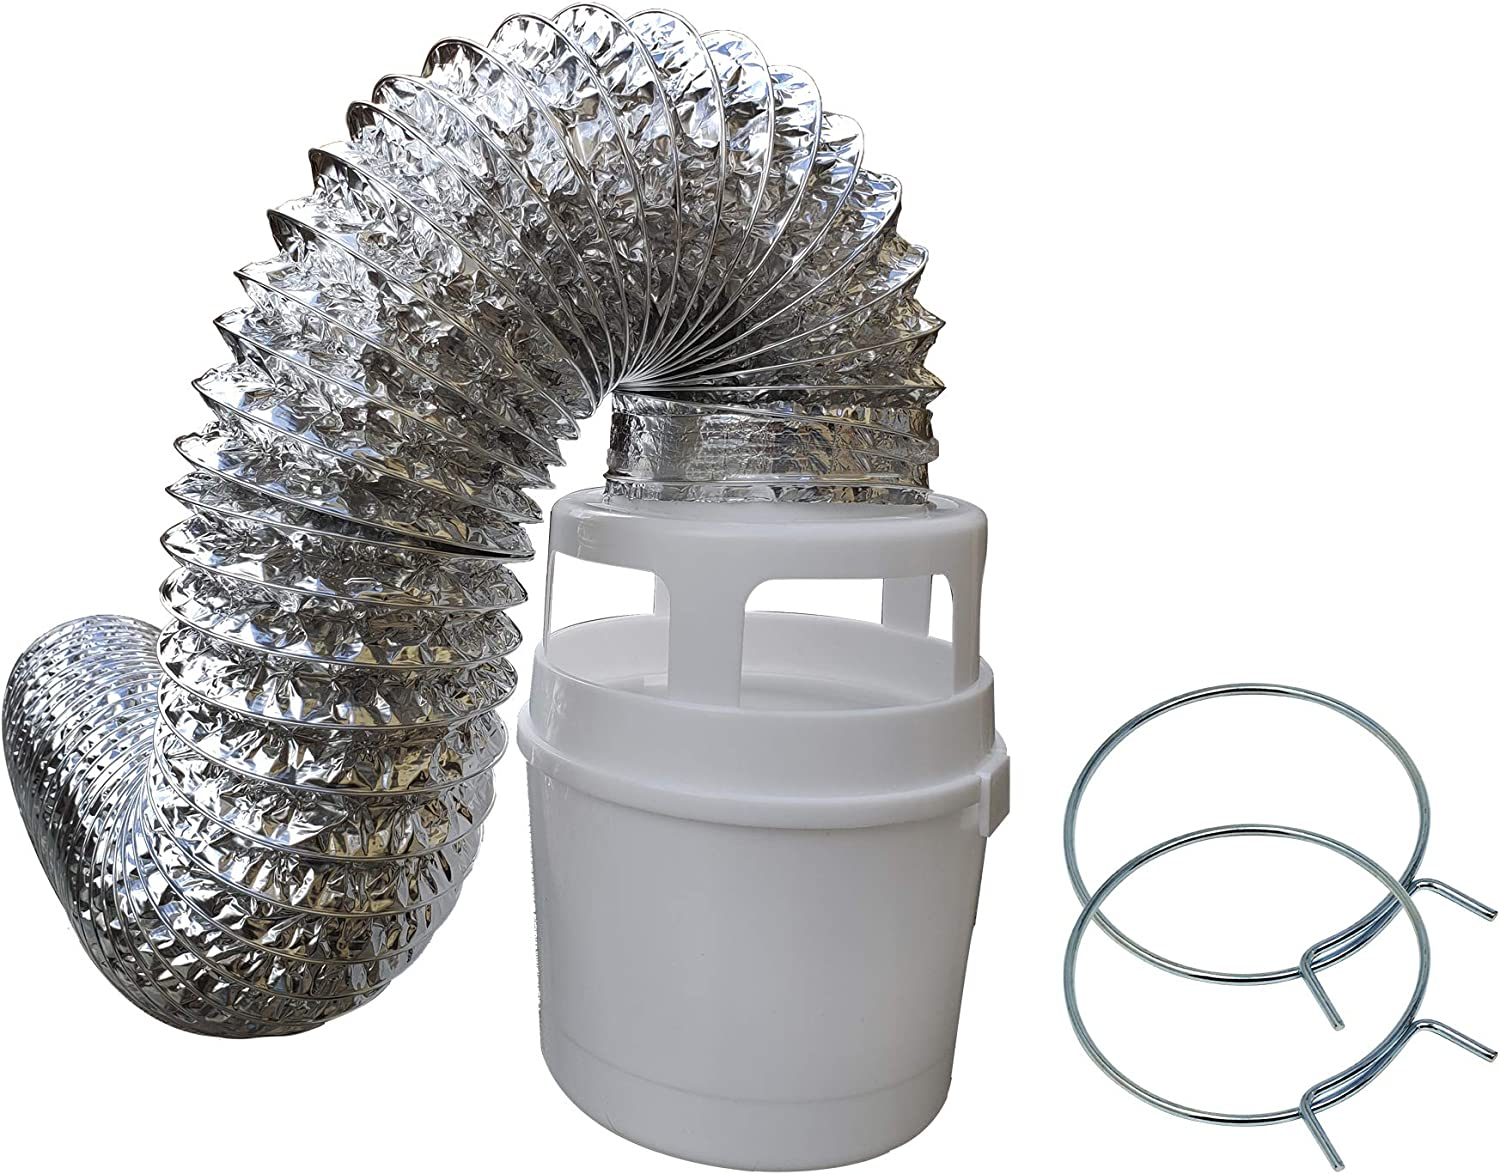 Raven Indoor Dryer Vent Kit with Lint Trap Bucket and 4 feet Flexible Aluminum Foil Duct TDIDVKZW 211L